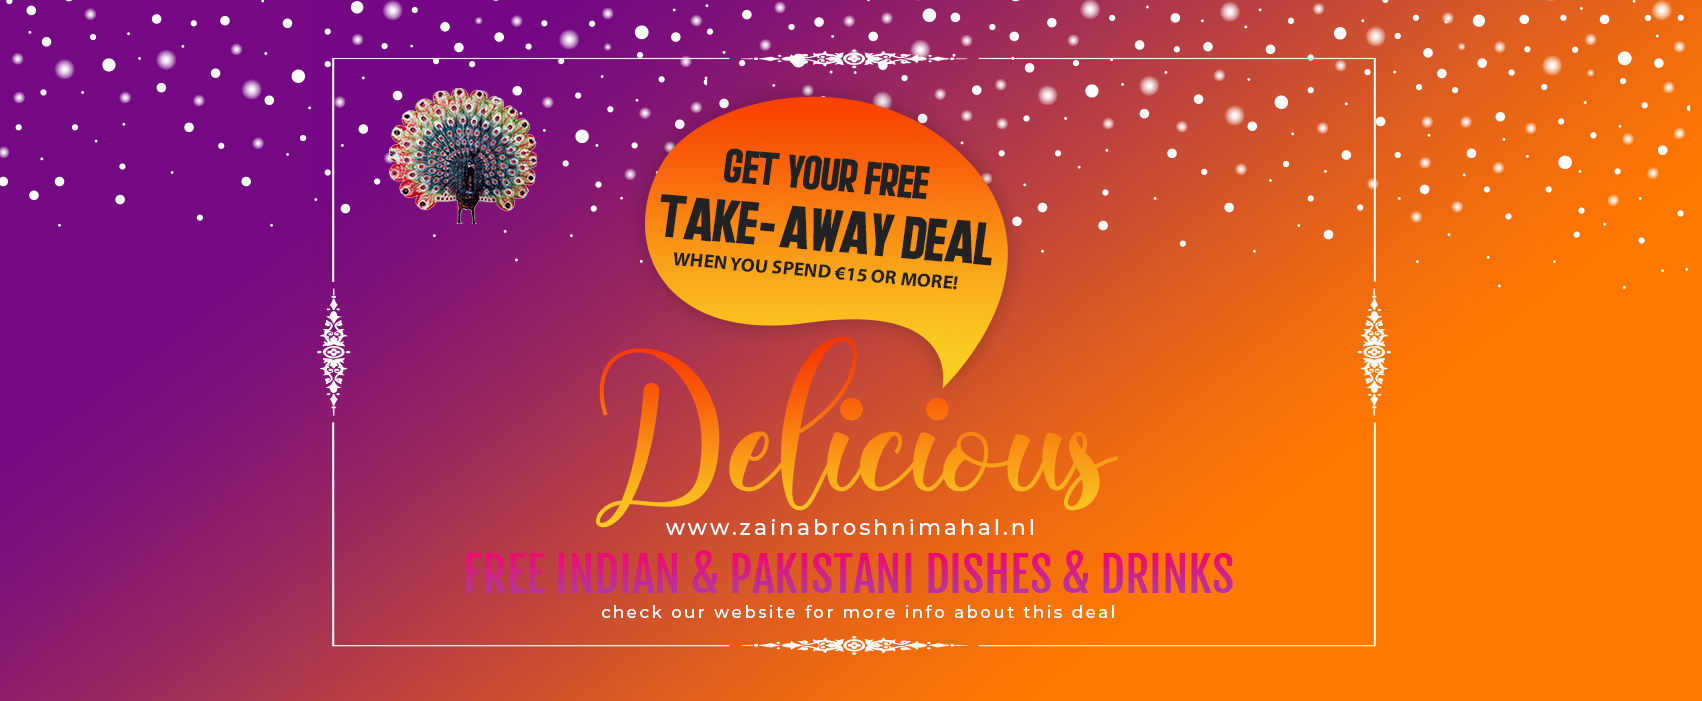 zainab-roshni-mahal-rotterdam-take-away